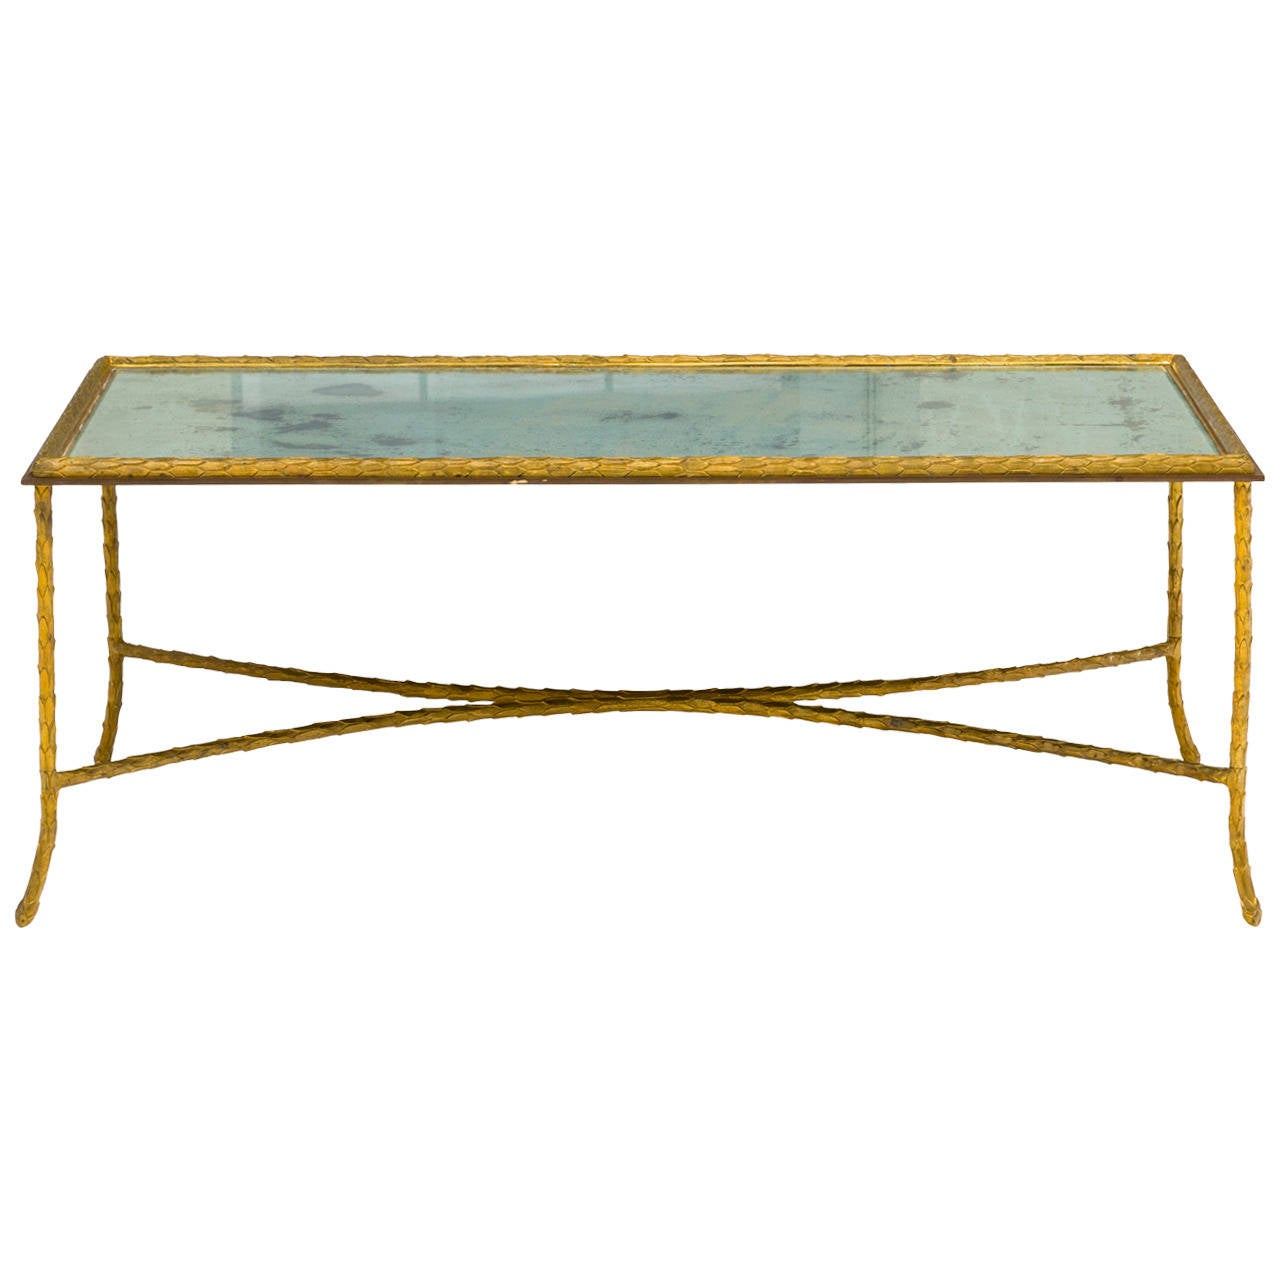 Elegant gilt bronze coffee table by maison bagues at 1stdibs Bronze coffee tables